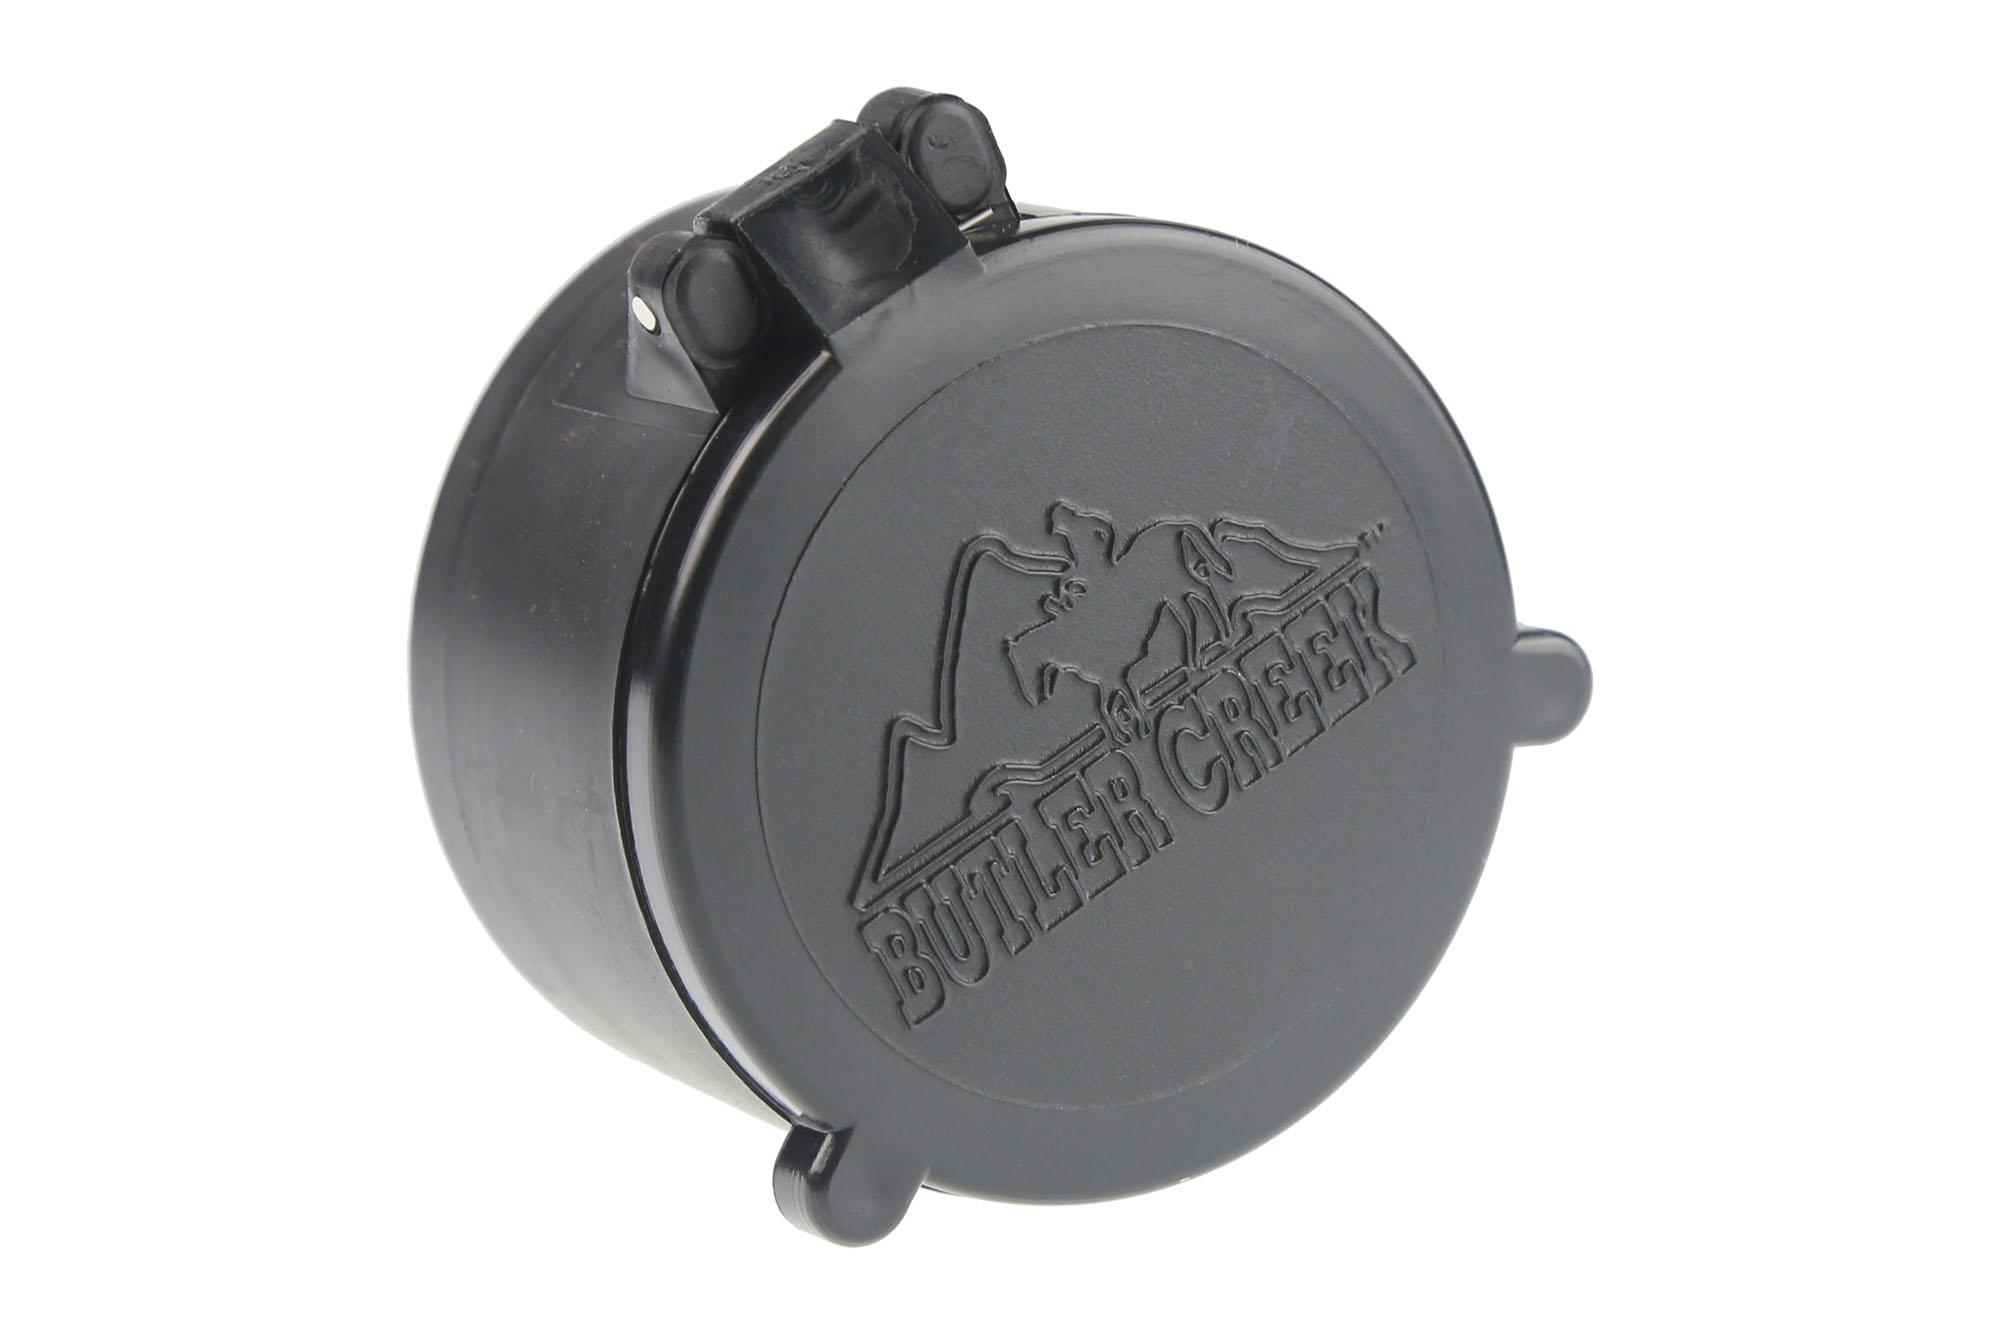 Butler Creek Flip Up Scope Cover 33 Objective